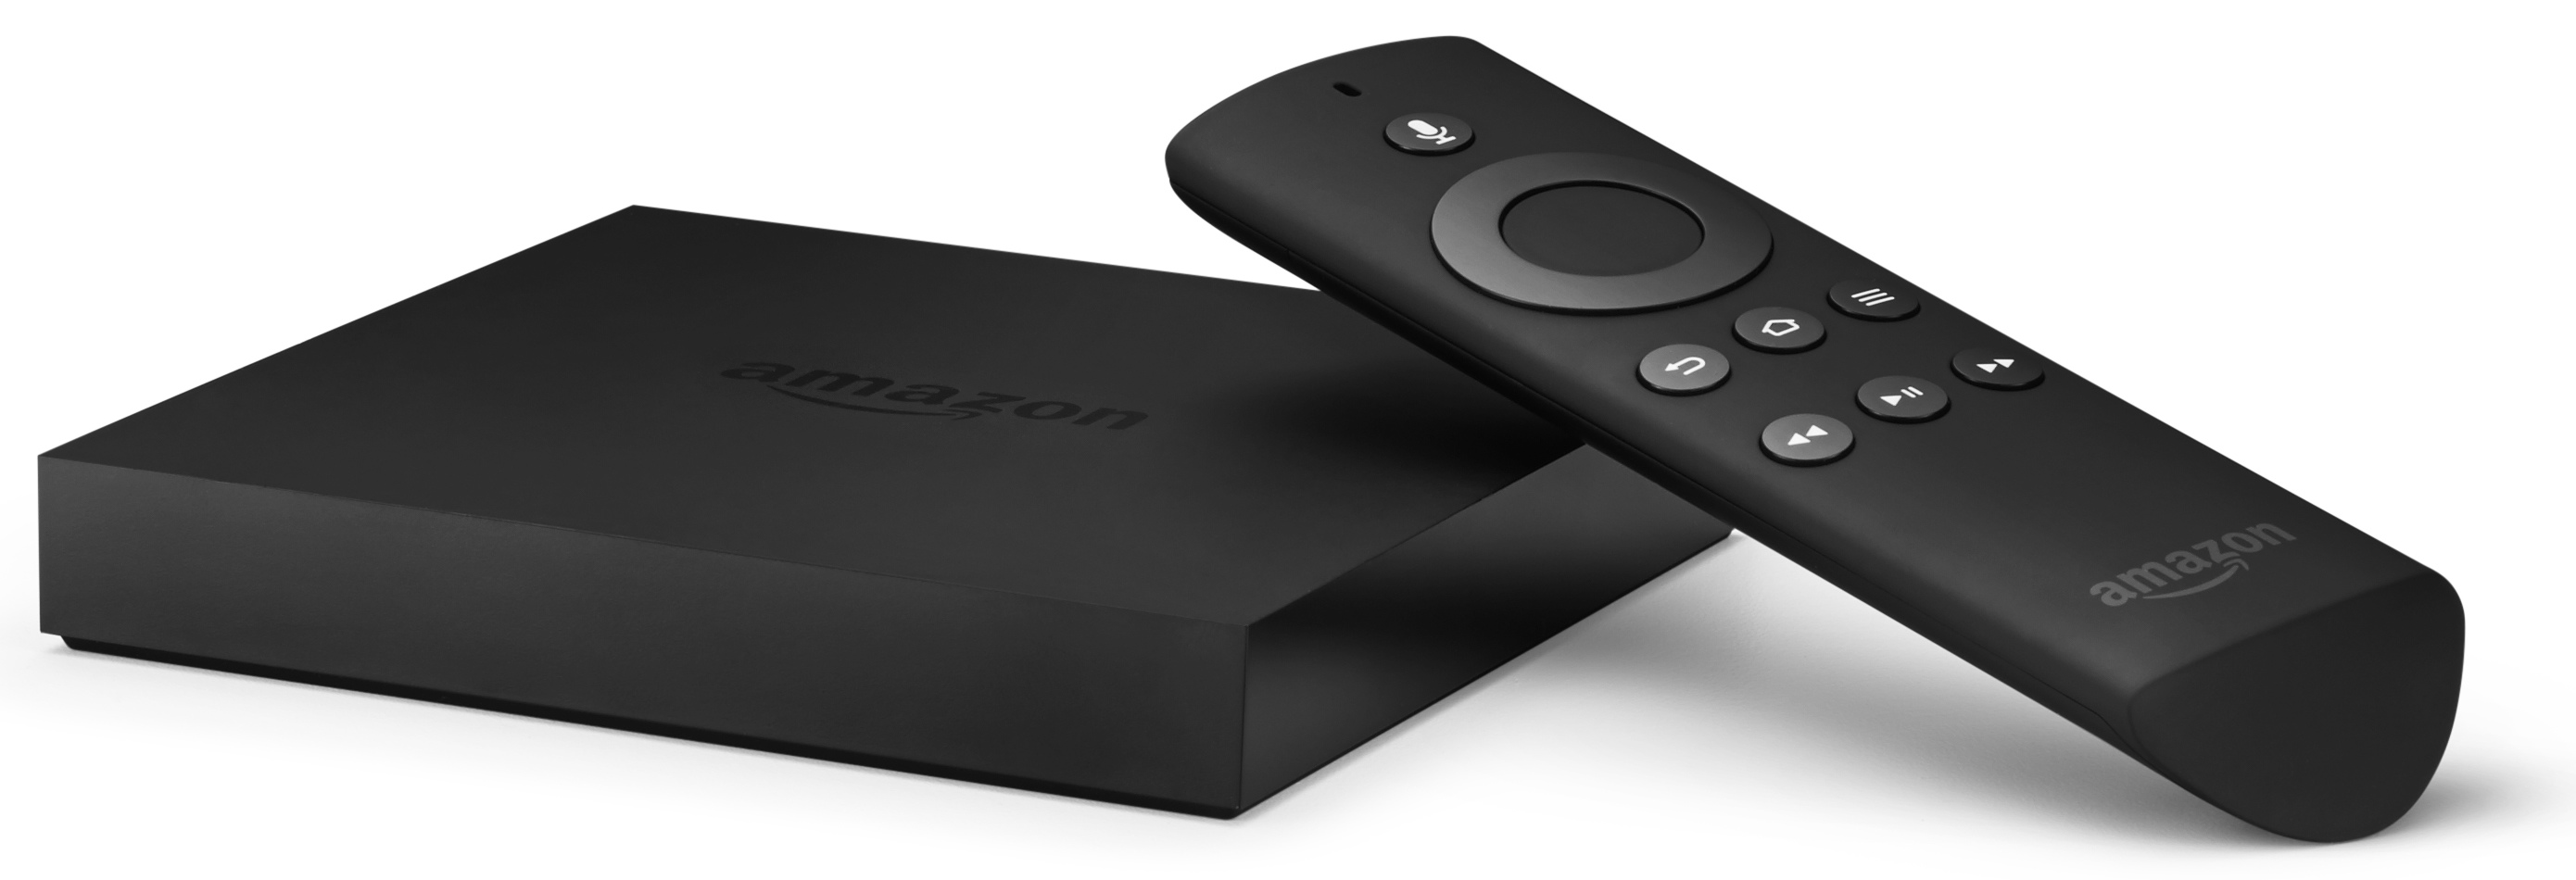 Amazon Fire TV (flat, with remote)